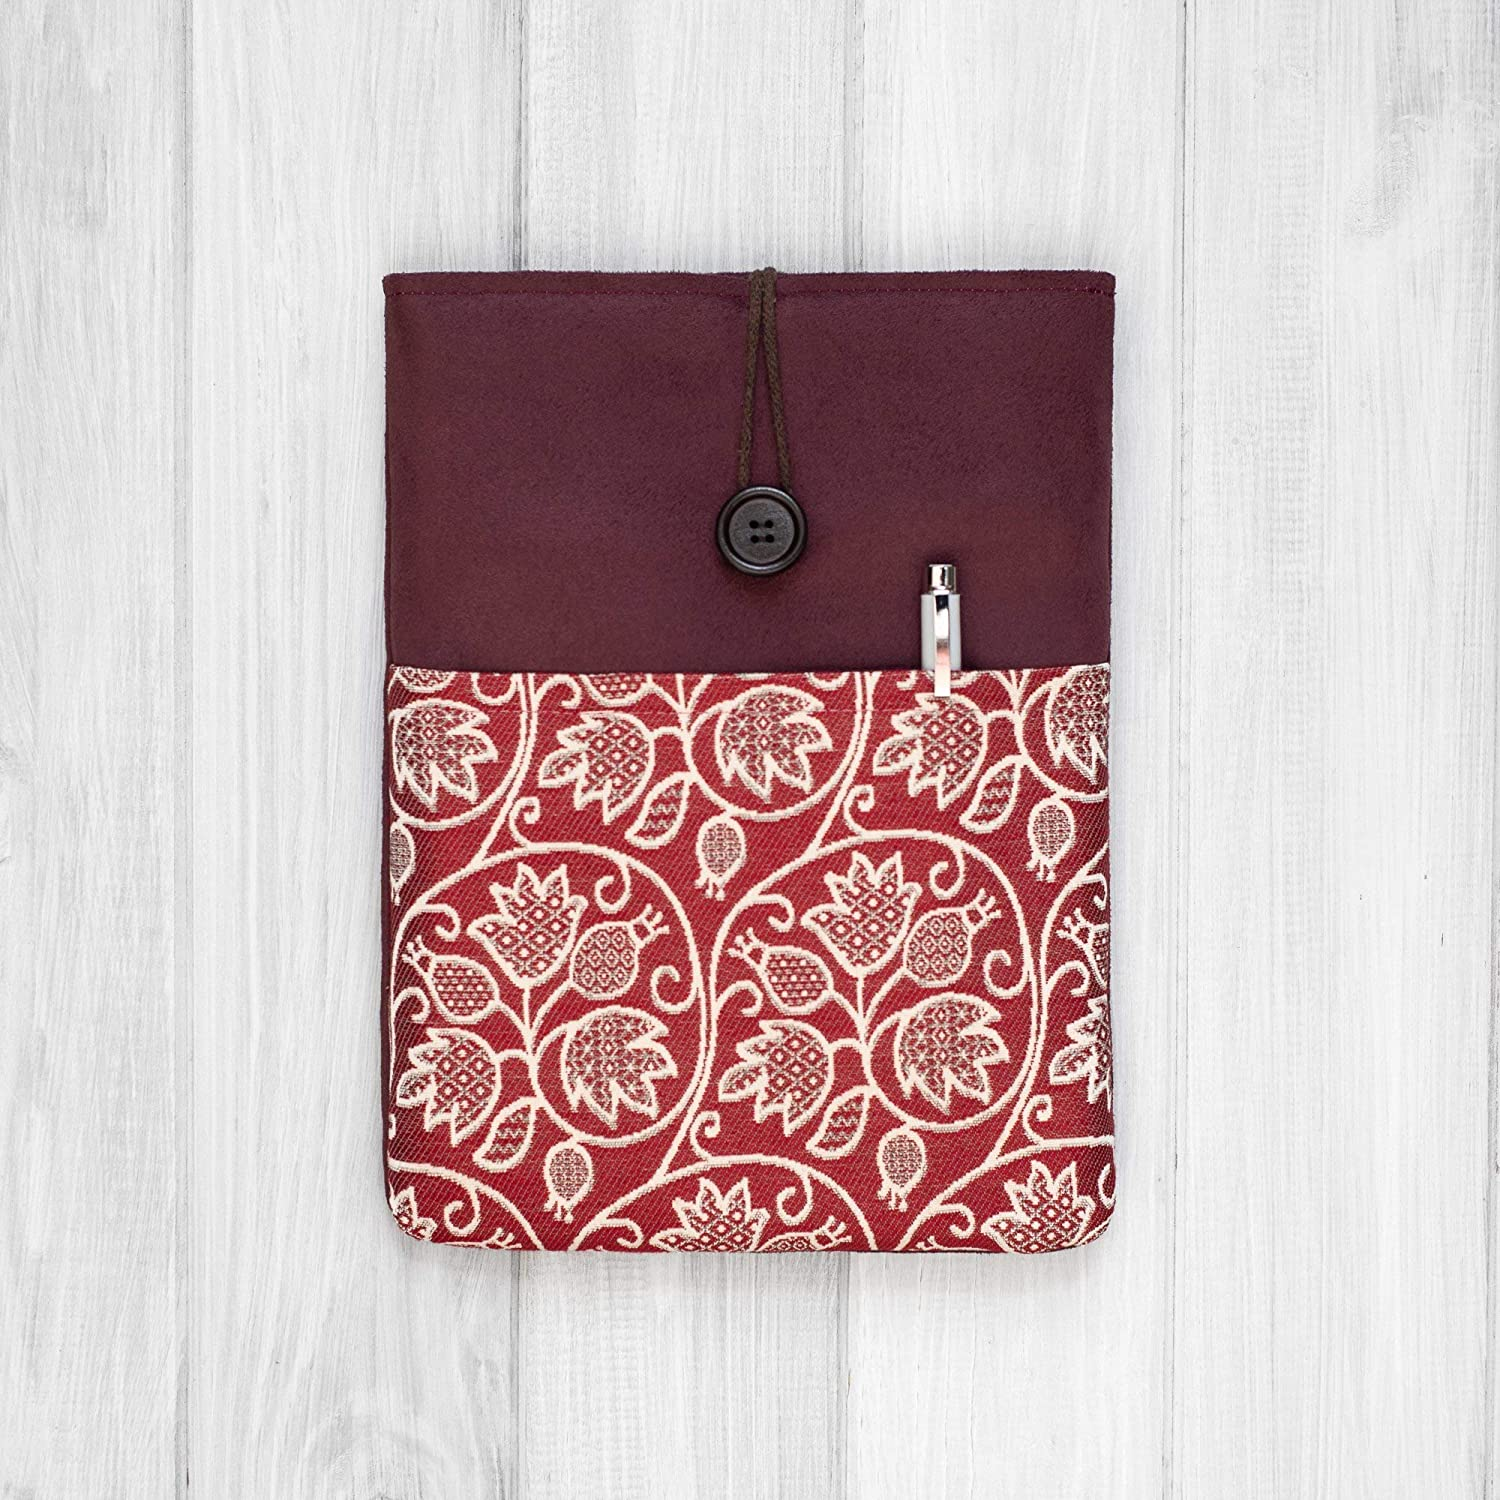 HOUSSE/étui/pochette pour tablette/iPad Pro 9.7 10.5 11 12.5 Mini and Air/Bordeaux/Rembourré